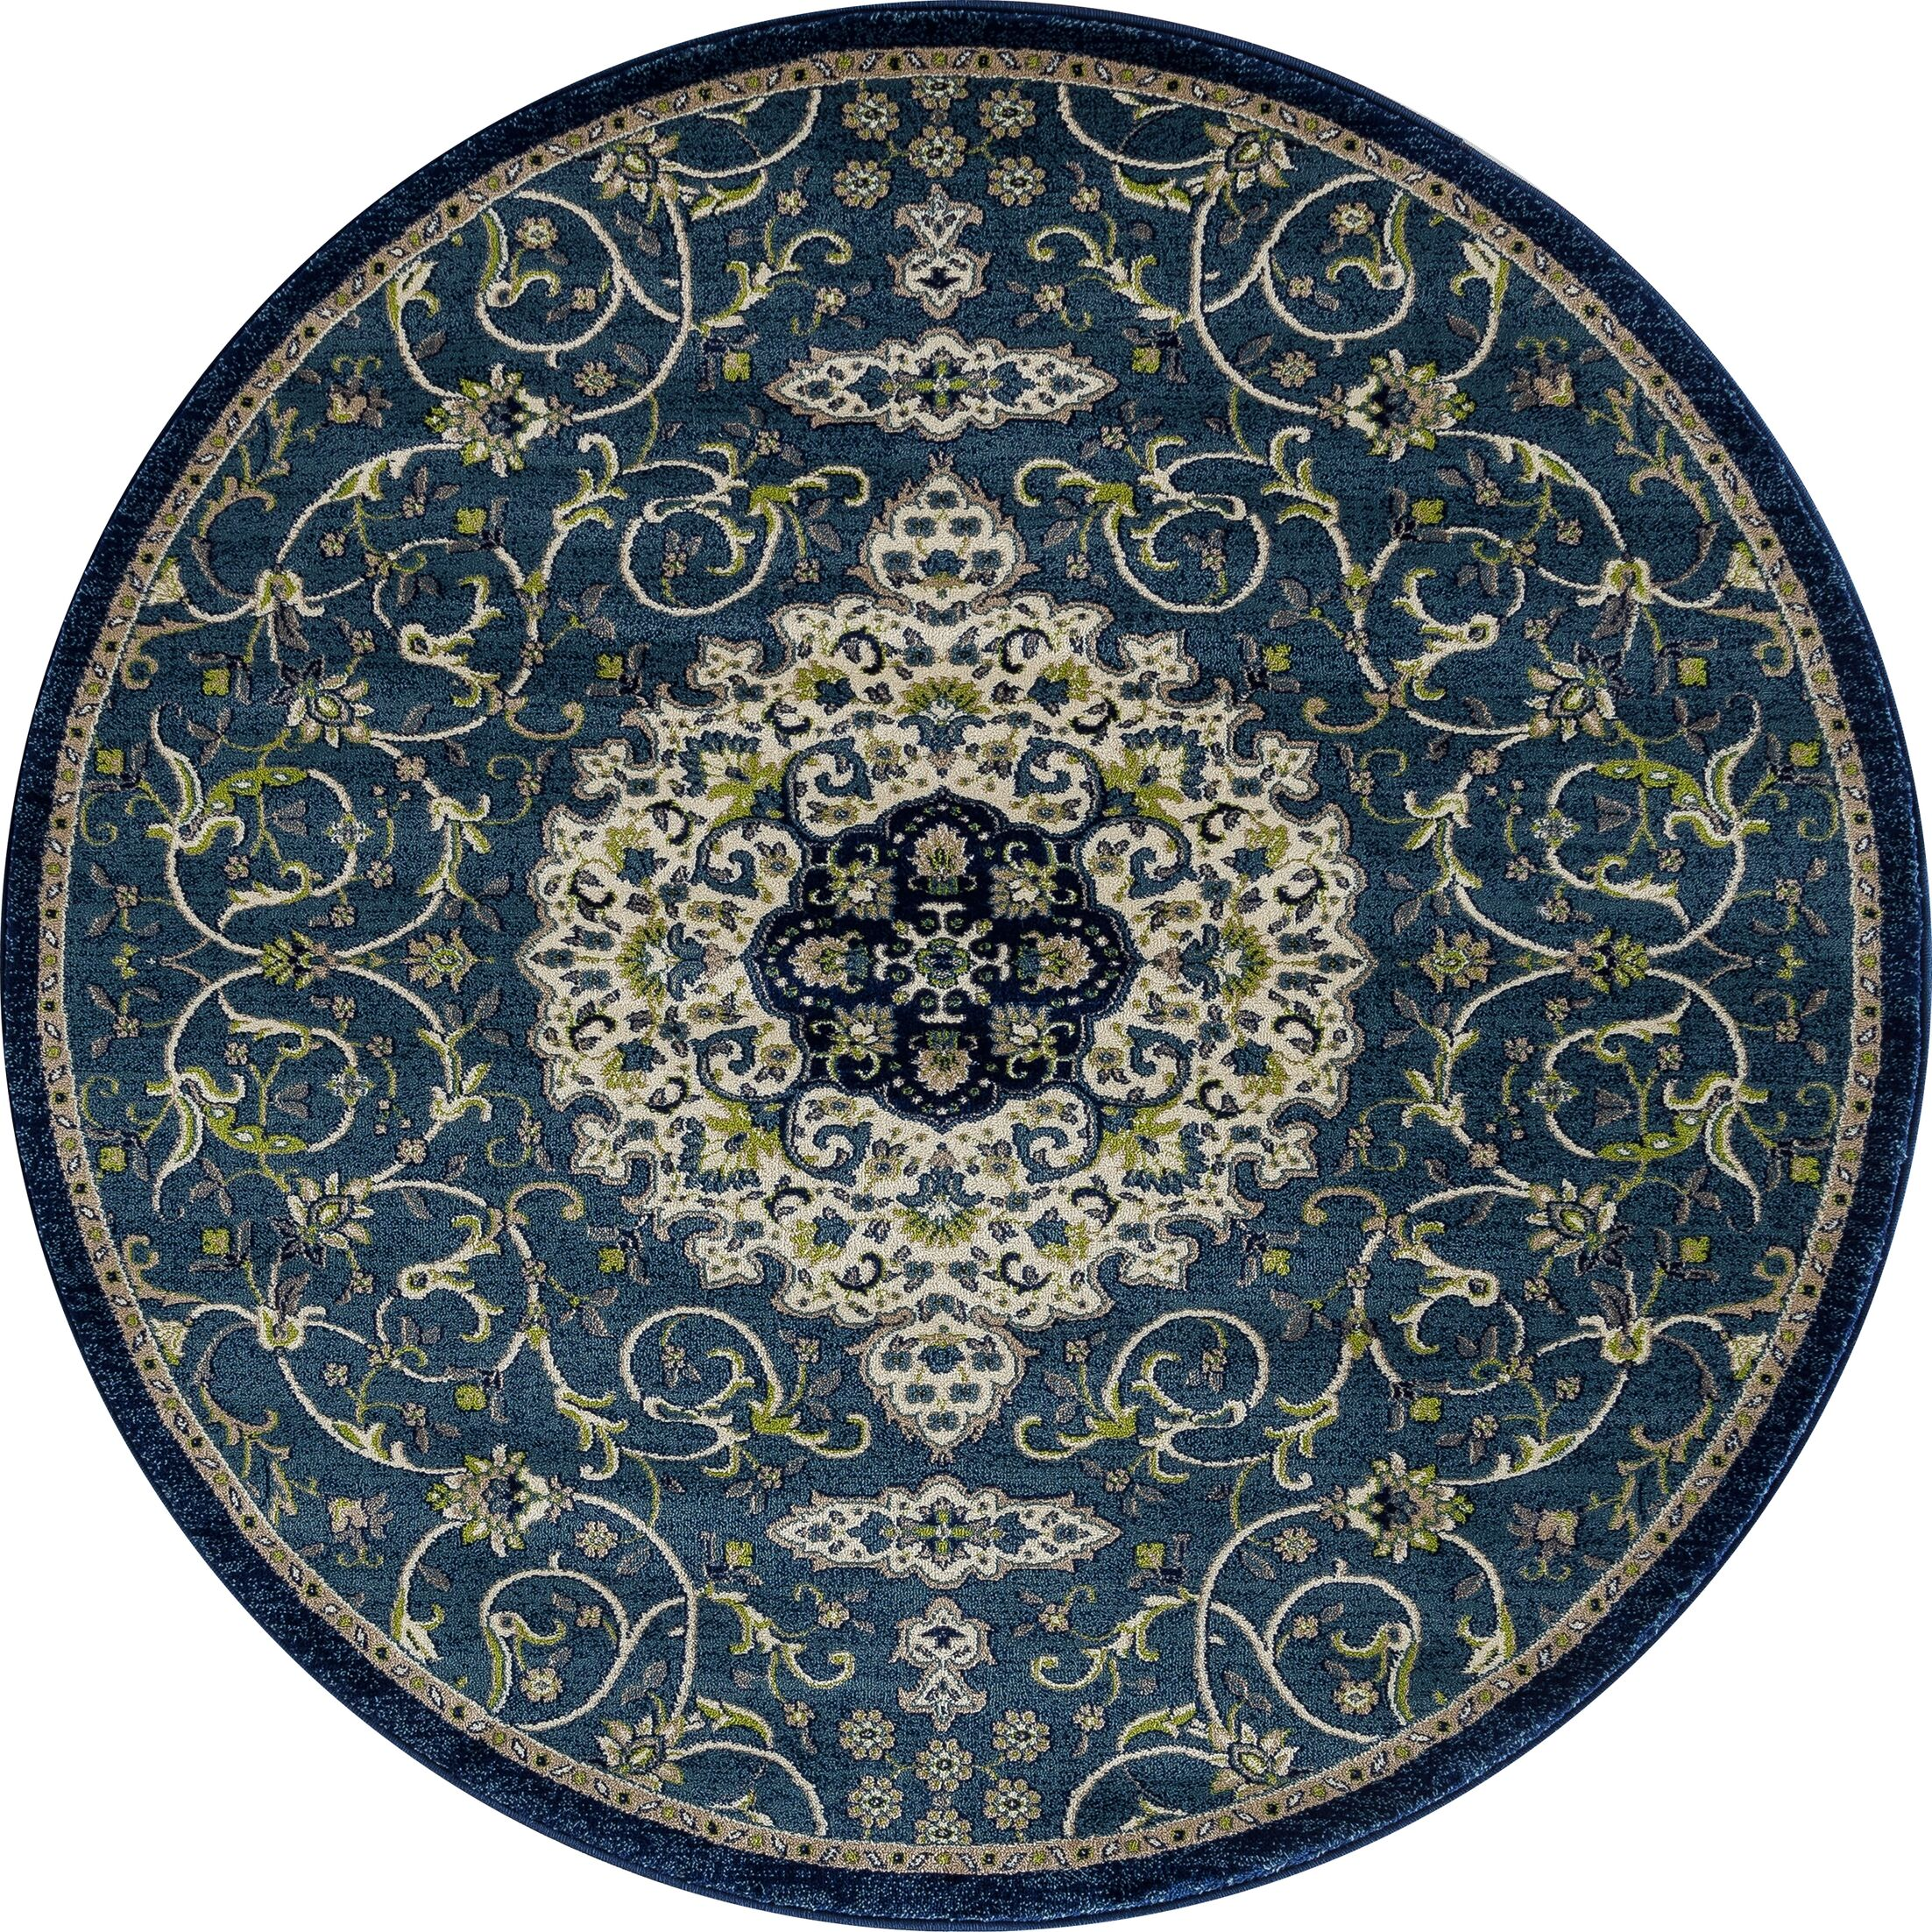 Landy Peacock Blue Area Rug Rug Size: ROUND 5'3